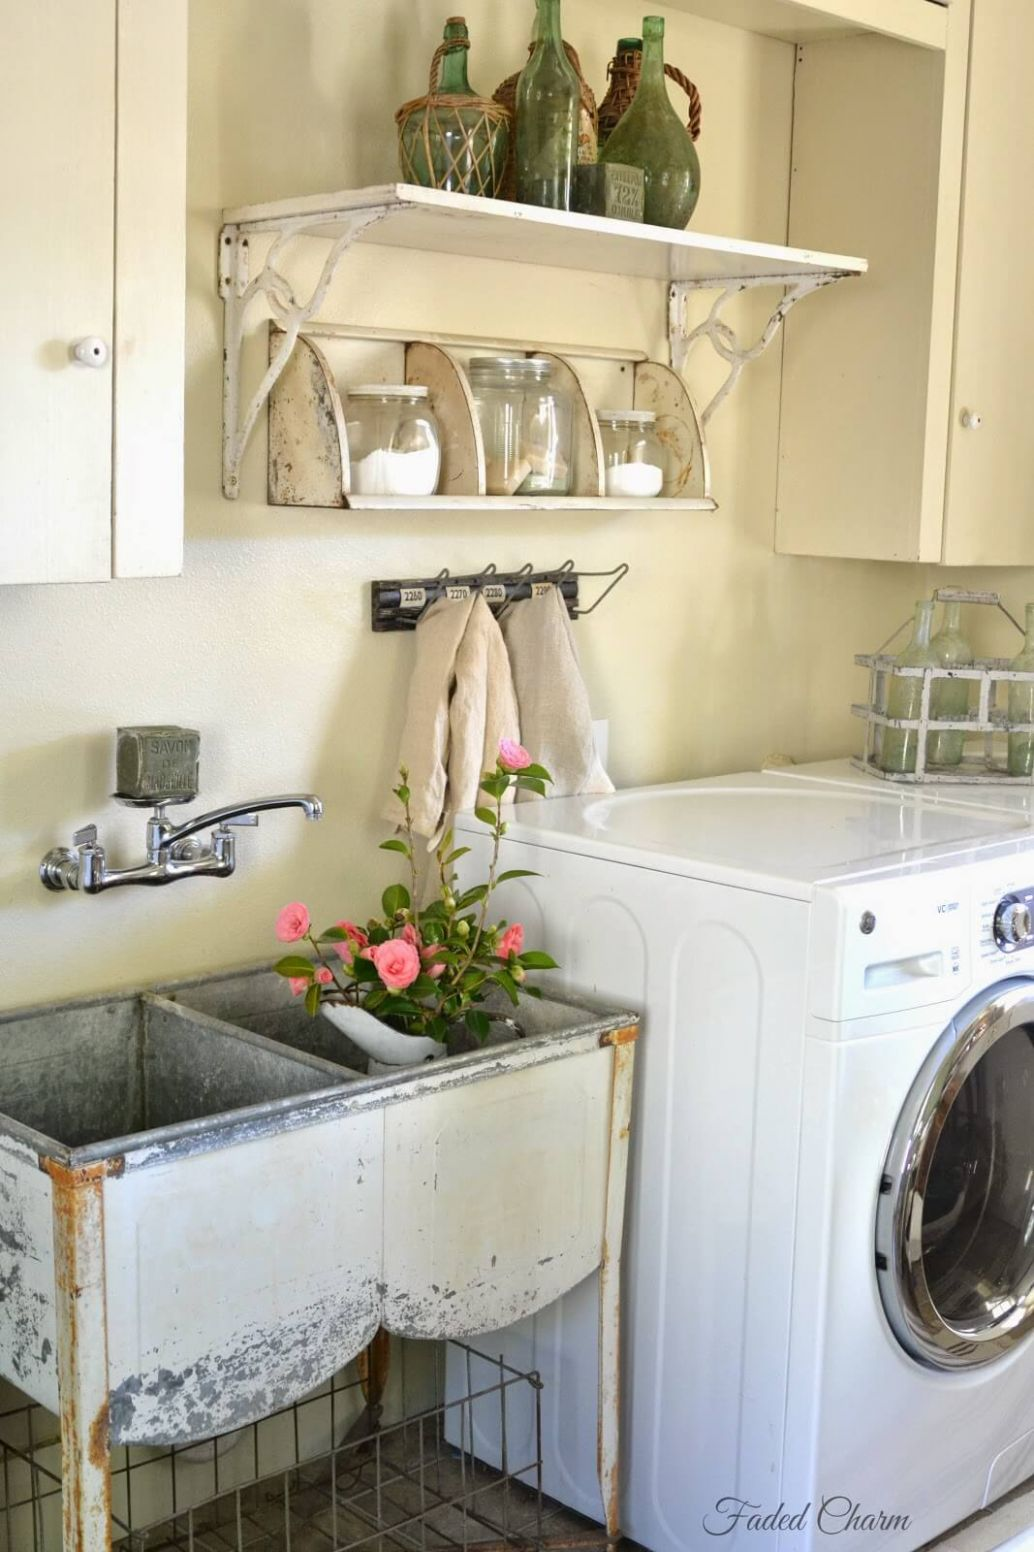 11 Best Vintage Laundry Room Decor Ideas and Designs for 11 - laundry room tub ideas